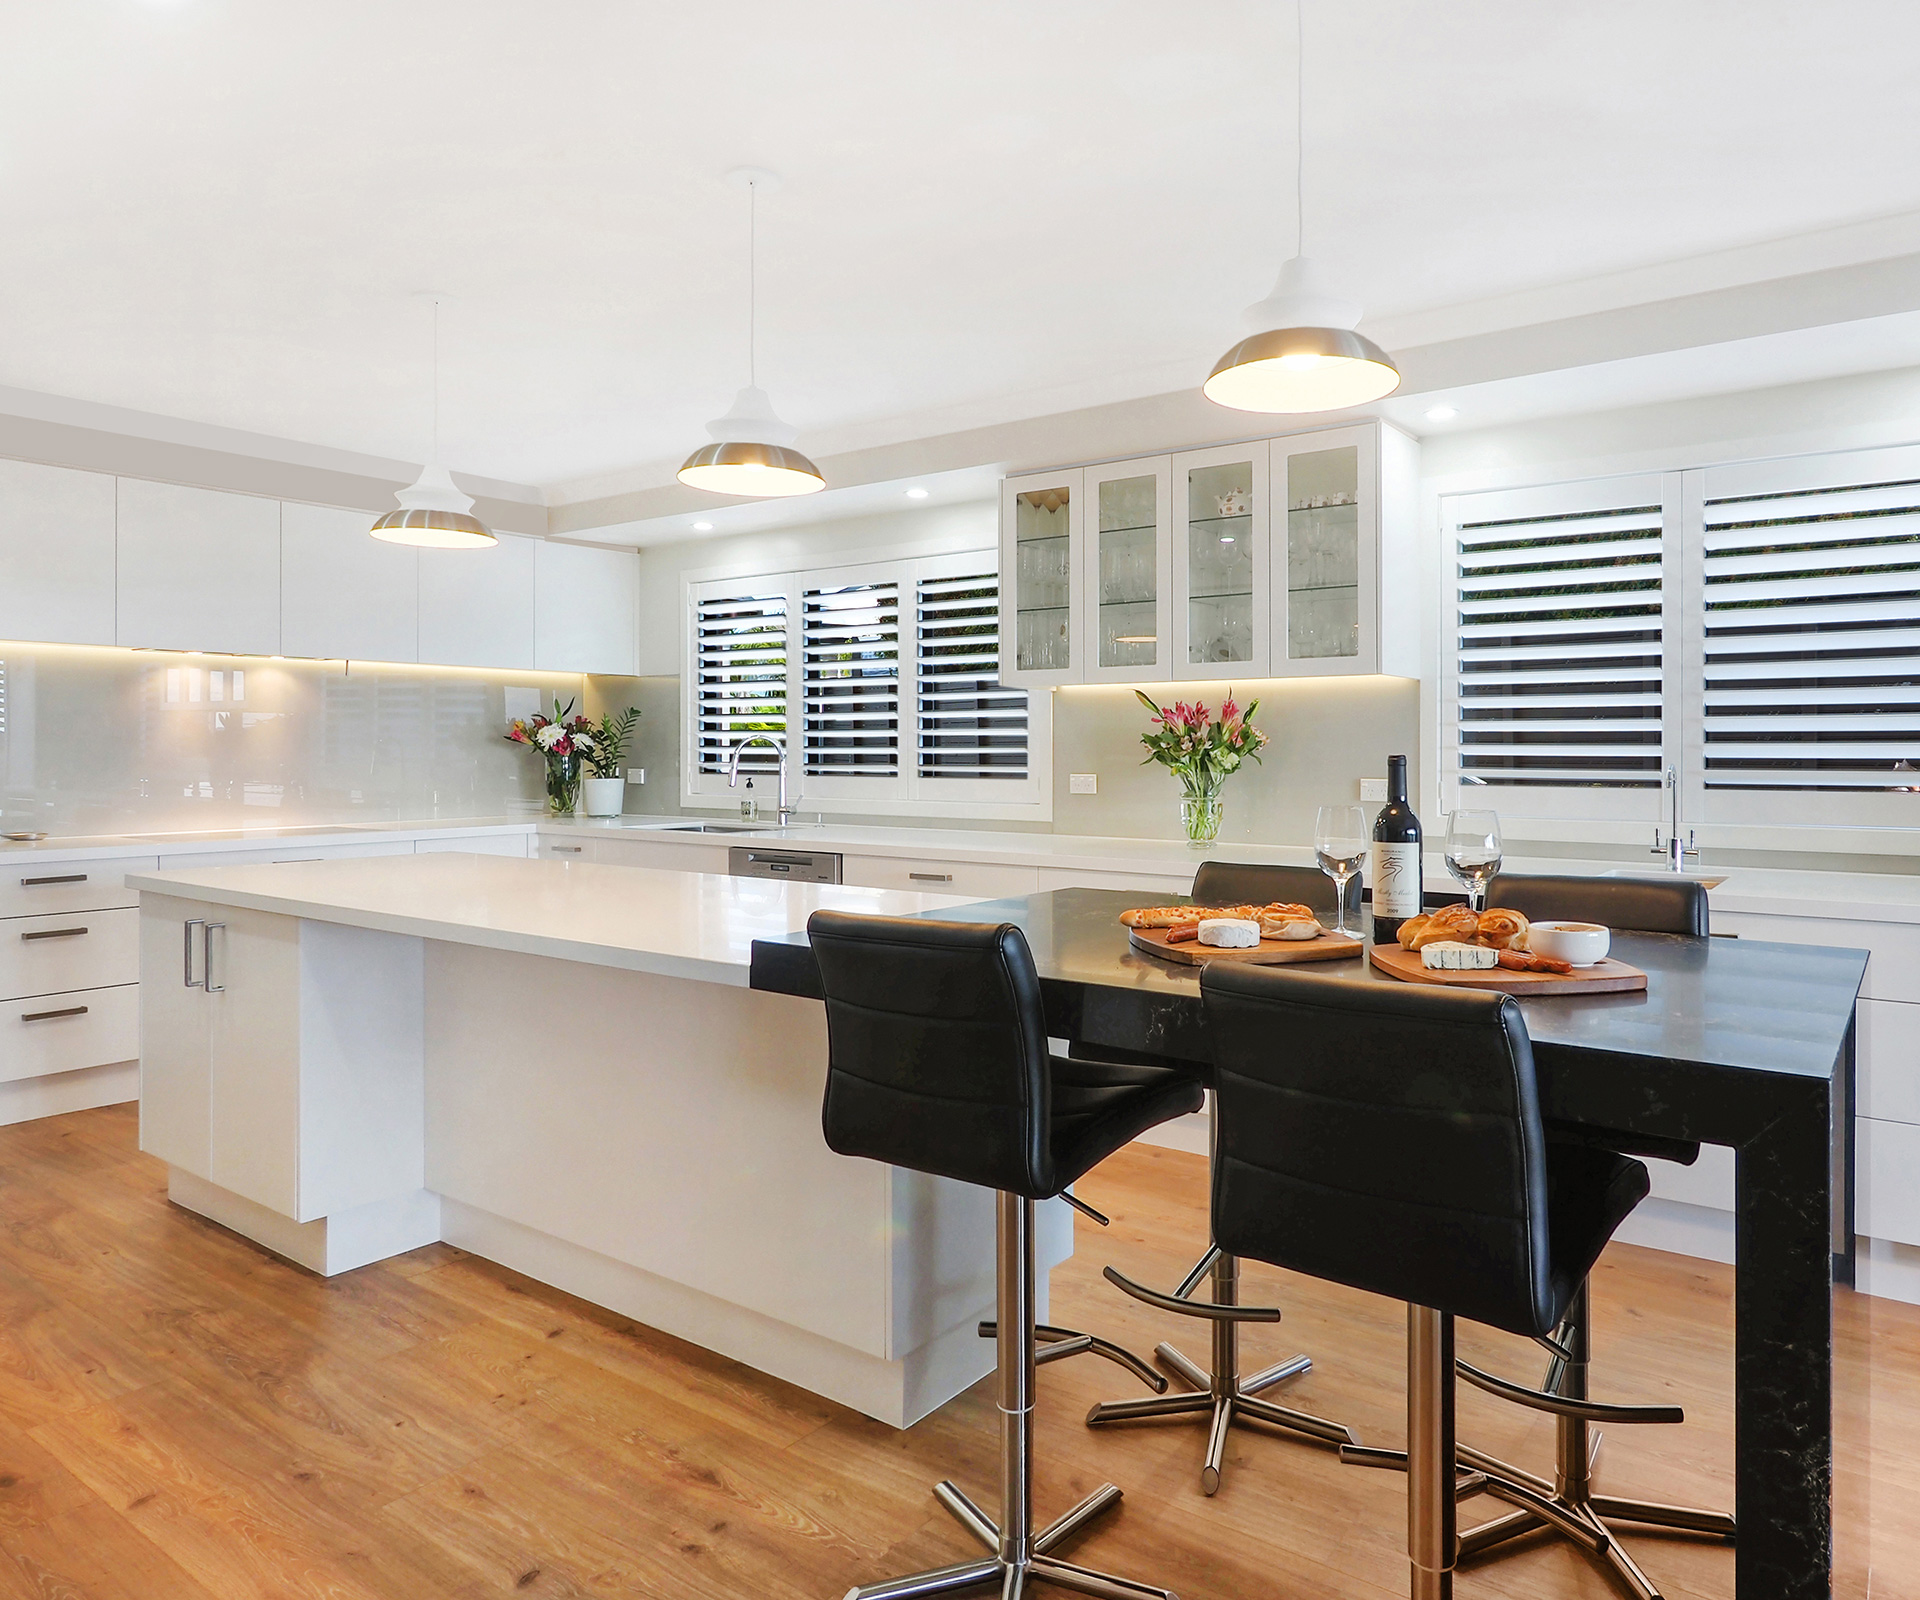 6 Things You Need To Do Before You Plan And Design A New Kitchen